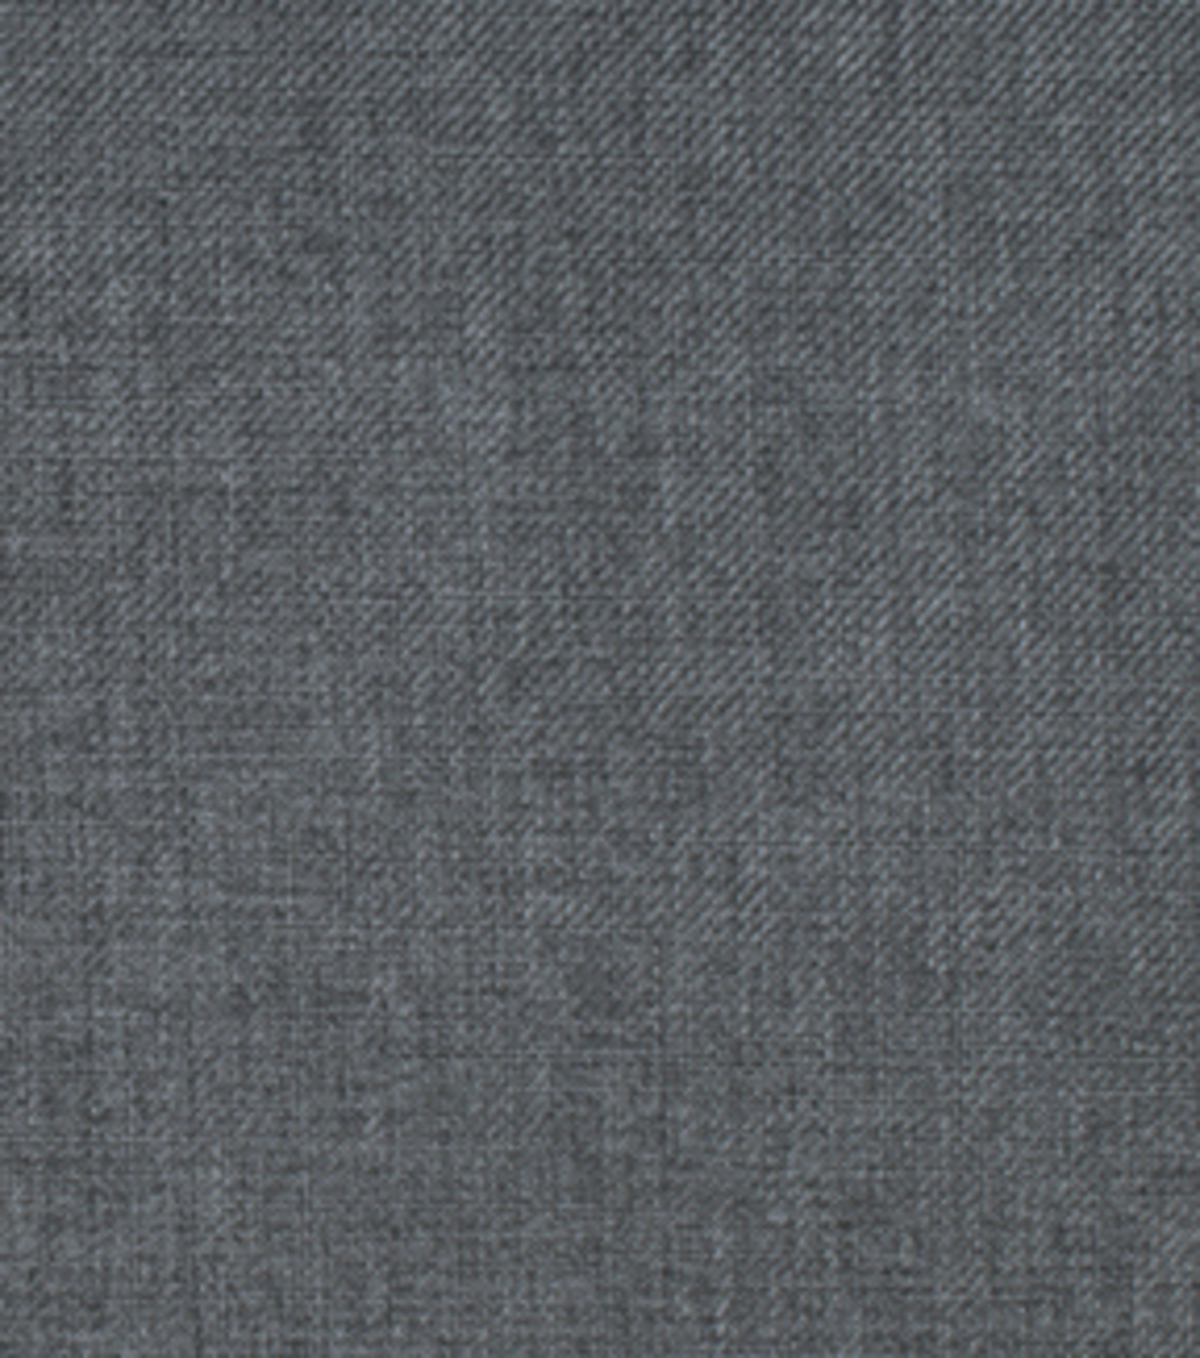 Home Decor 8\u0022x8\u0022 Fabric Swatch-Eaton Square Heston Aegean